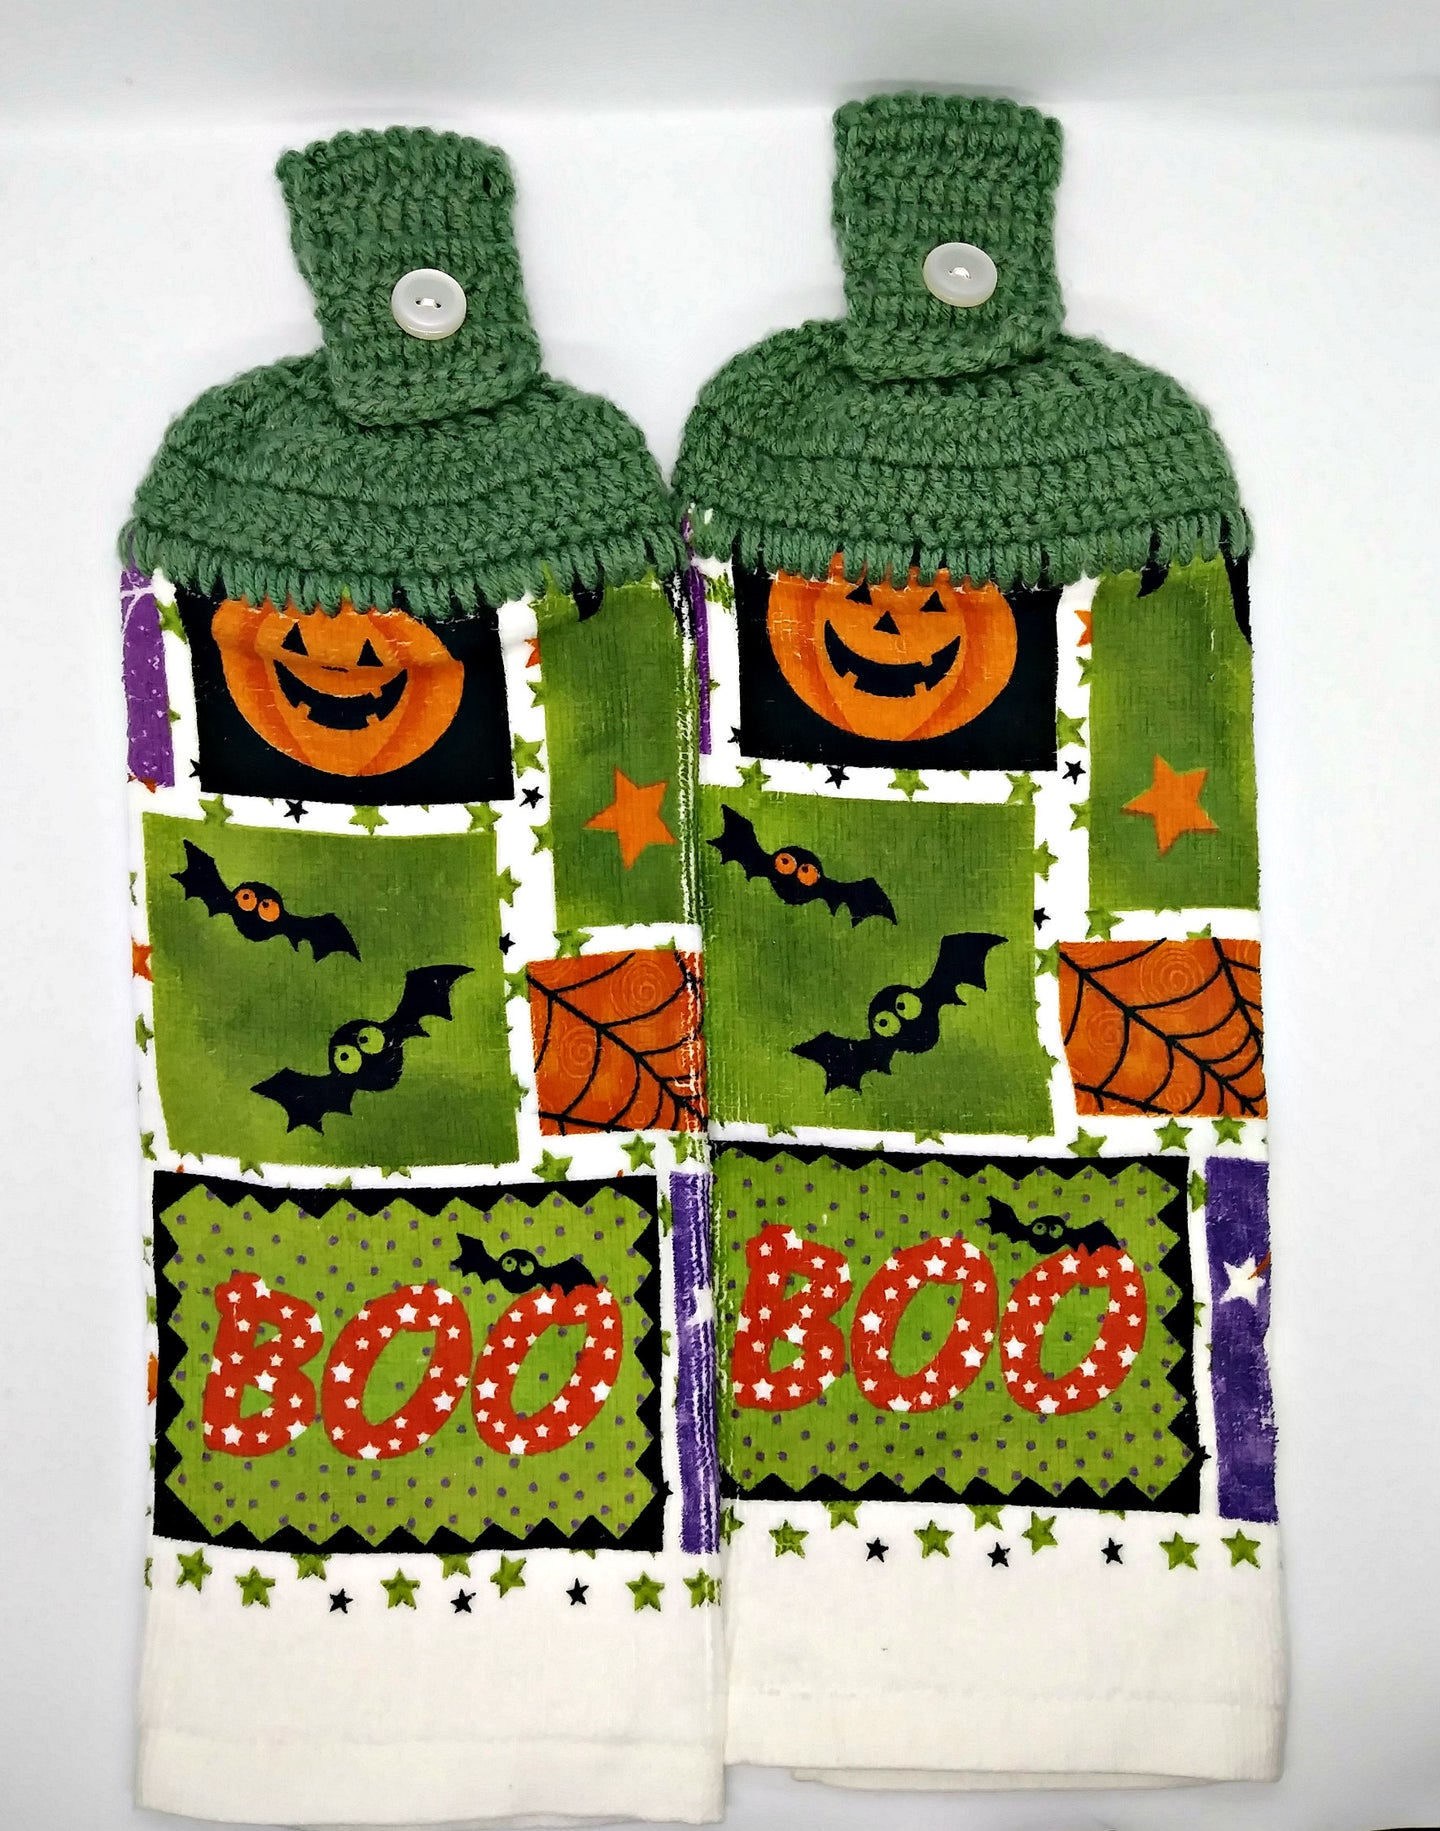 Boo Bats Pumpkins Spiders Halloween Hanging Kitchen Towel Set